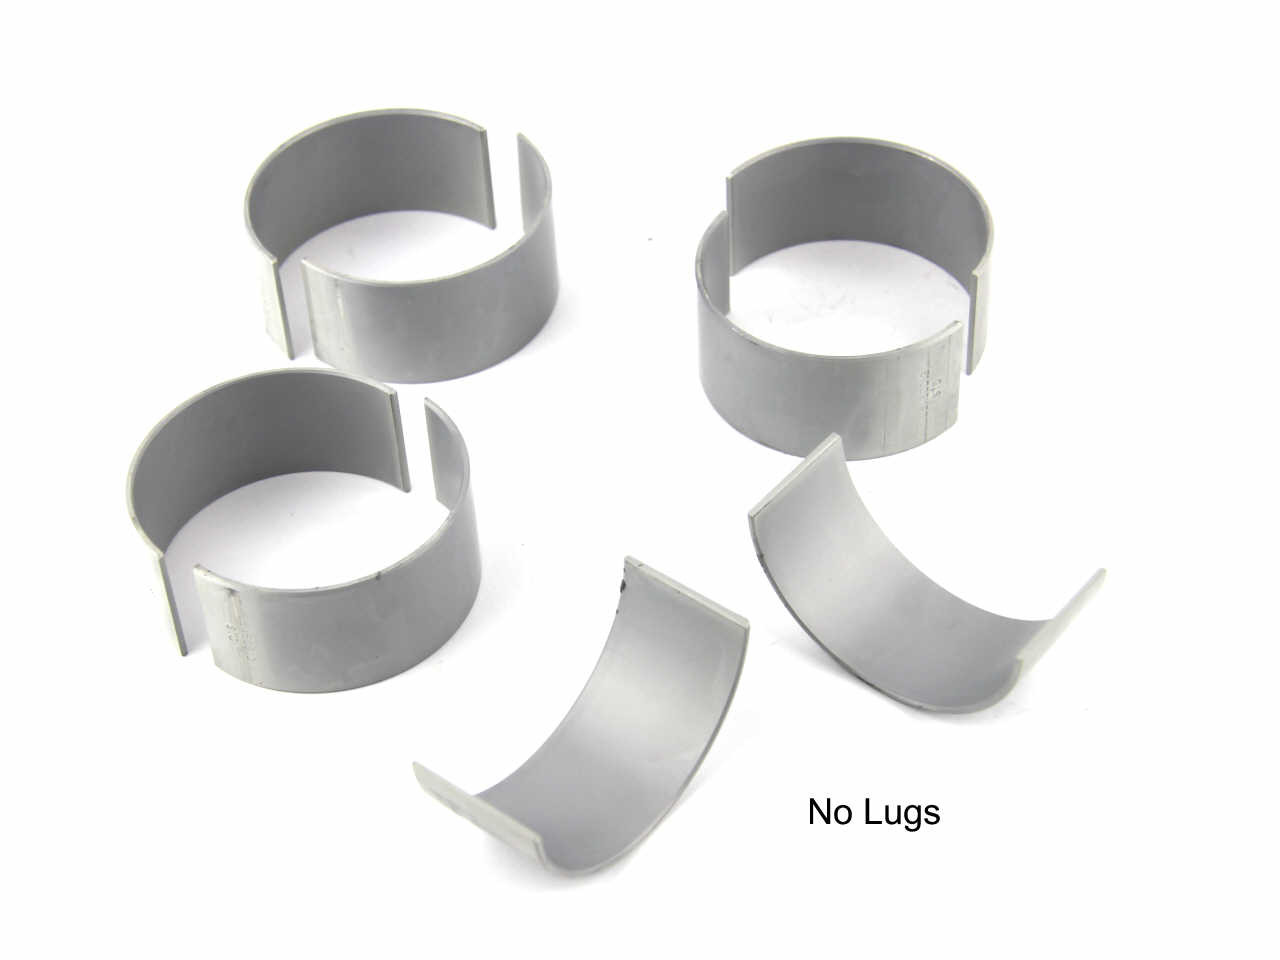 Perkins Phaser 1004 connecting rod bearings without lugs